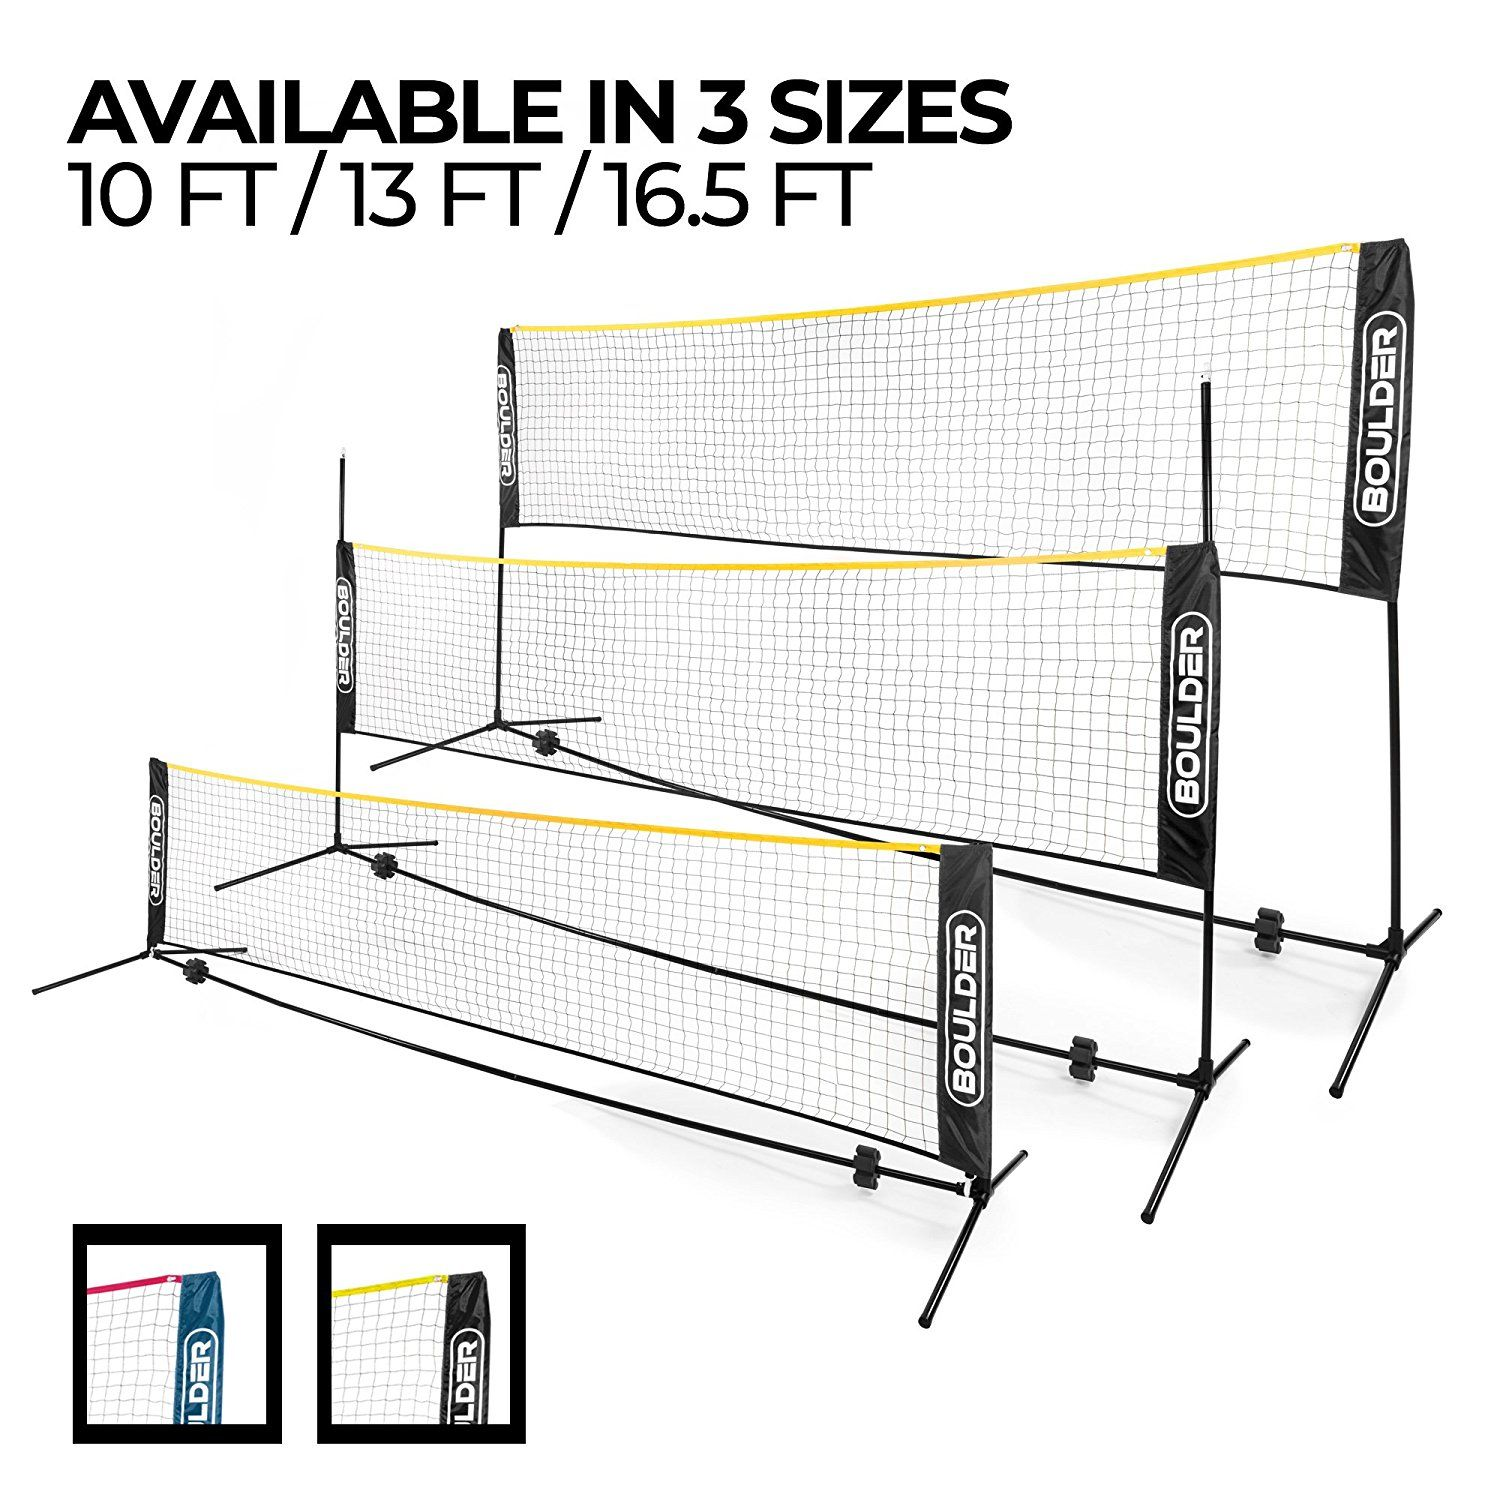 2 Boulder Portable Badminton Net Set Soccer Tennis Badminton Nets Badminton